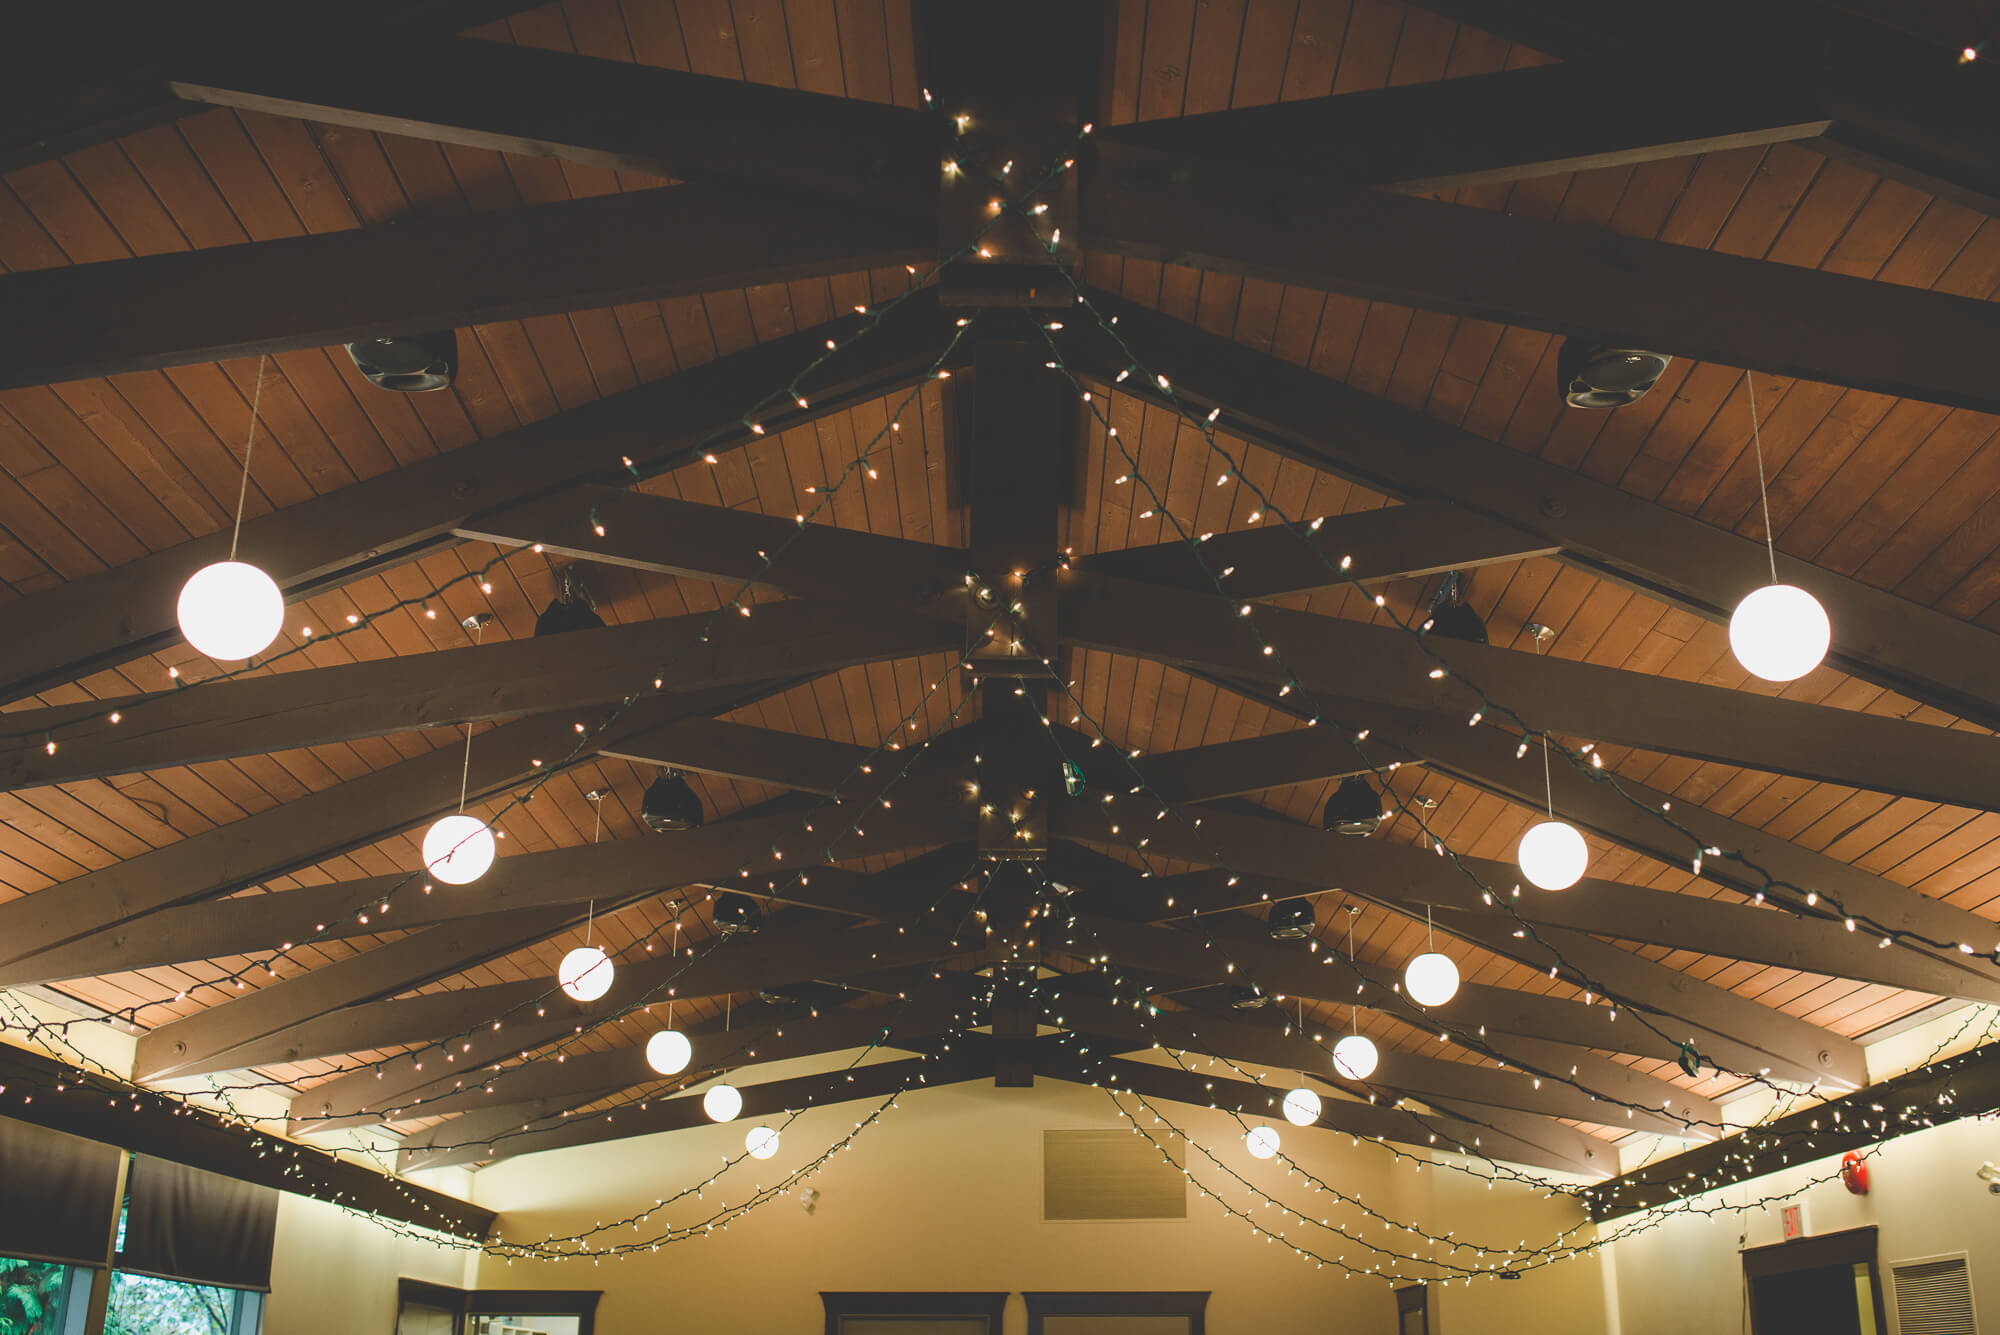 twinkle lights strung from wooden beam ceiling at wedding reception at Centennial Lodge